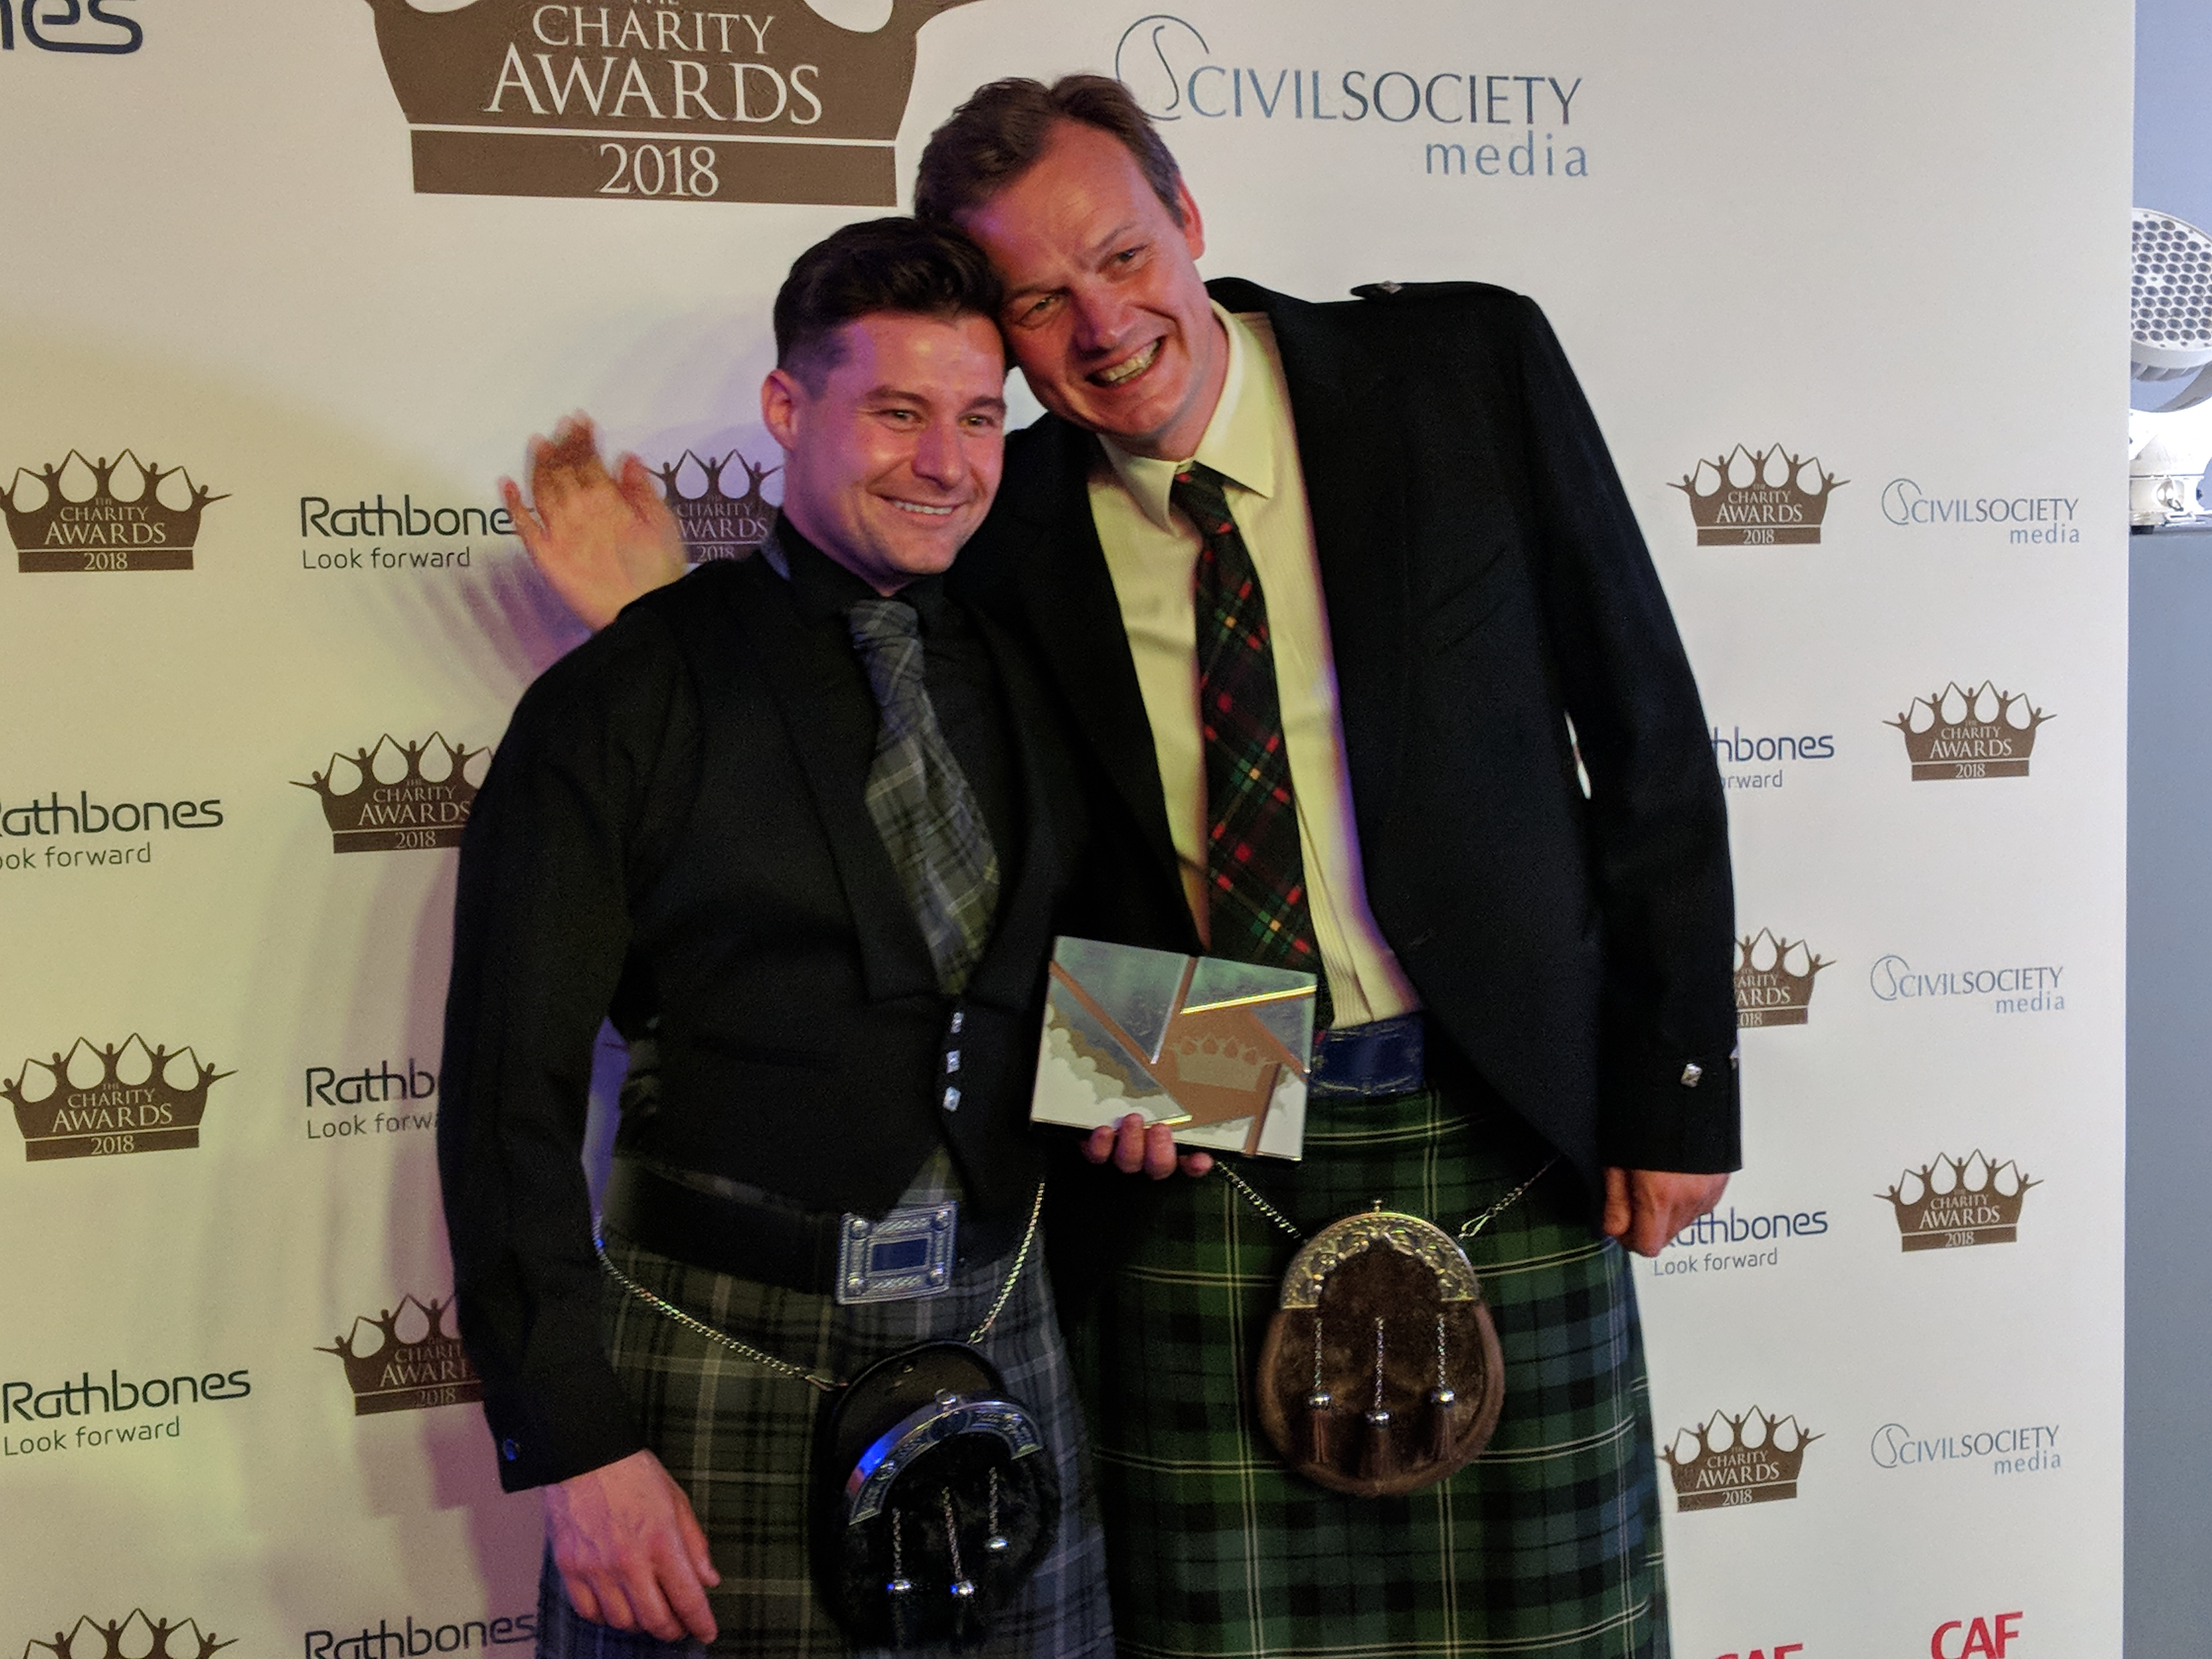 Who Cares? Scotland pose with their award at the Charity Awards